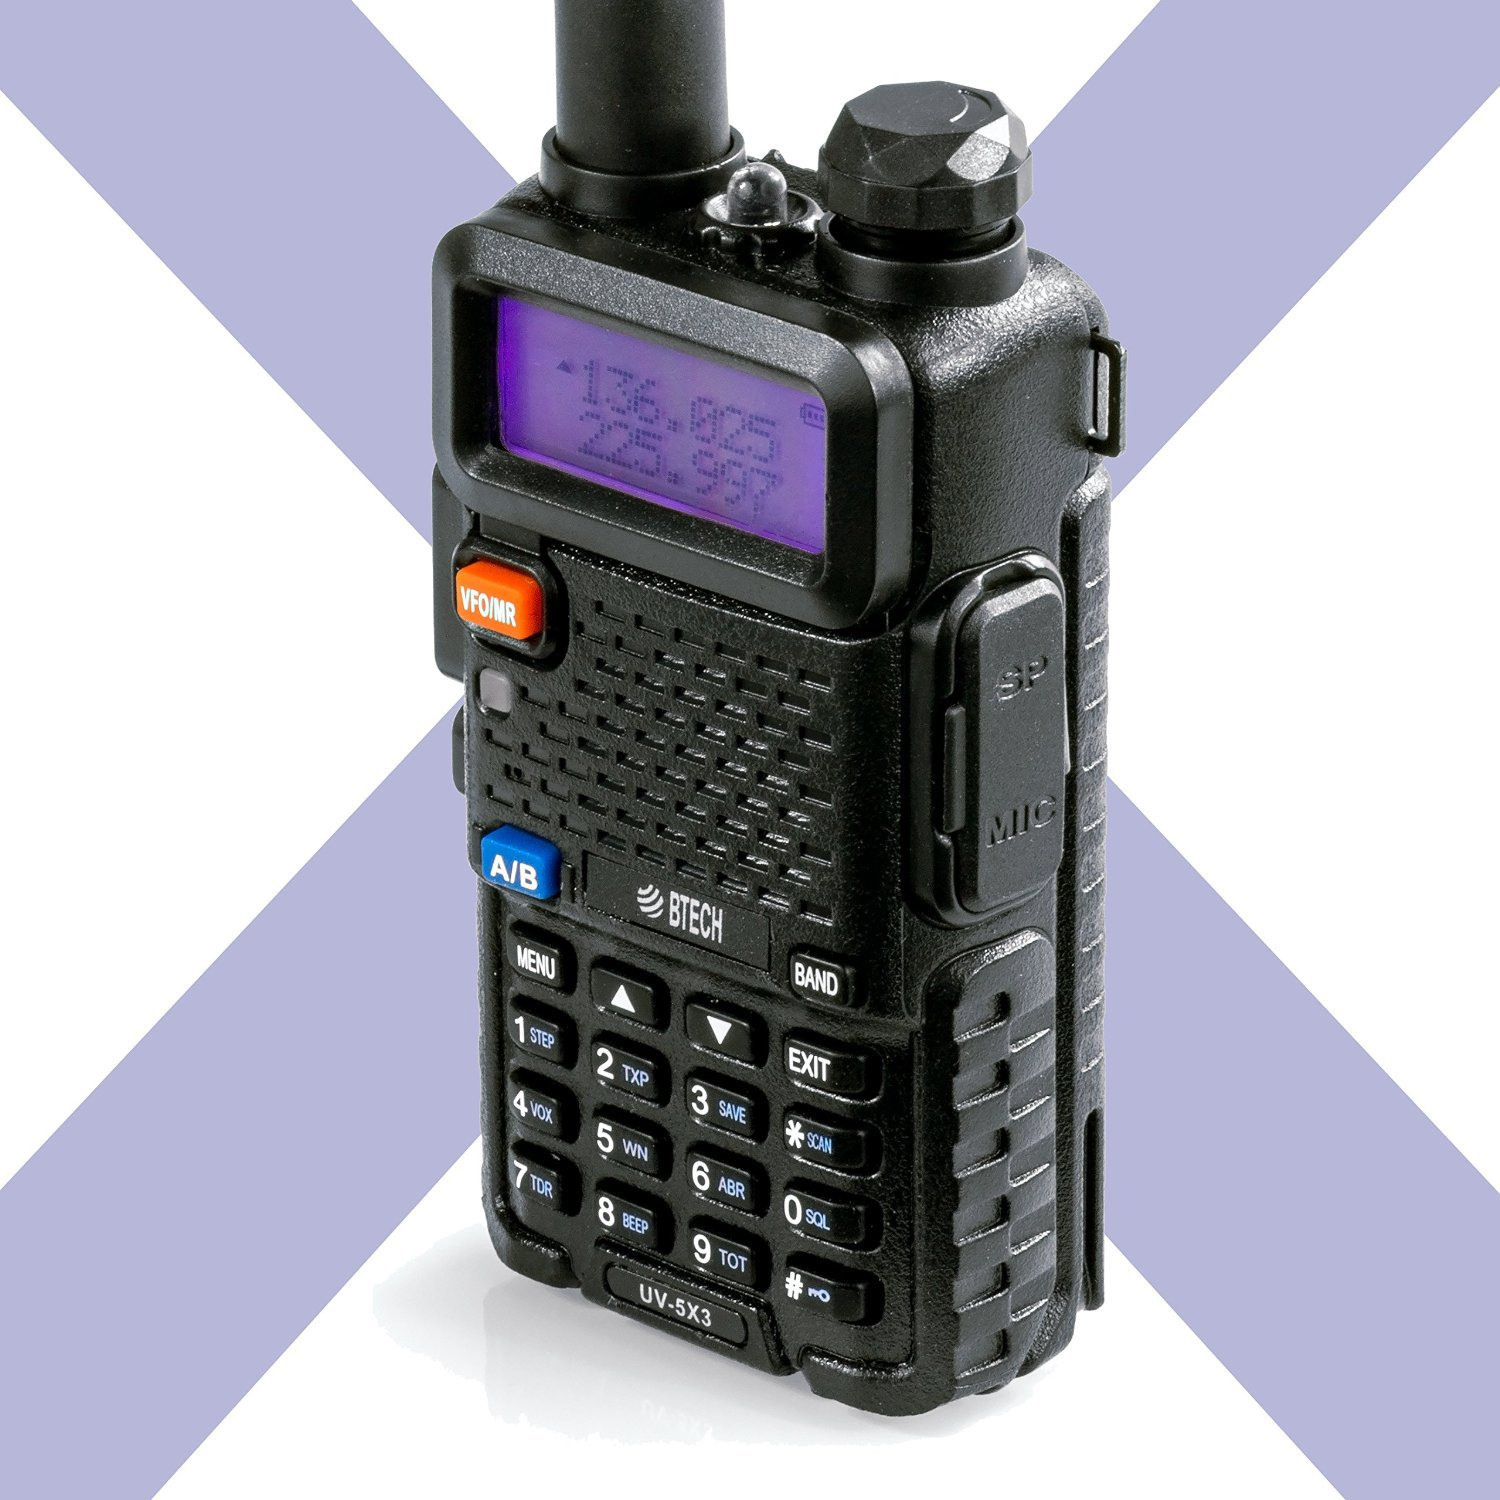 BTECH UV-5X3 5 Watt Tri-Band Radio VHF, 1.25M, UHF, Amateur (Ham), Includes Dual Band Antenna, 220 Antenna, Earpiece, Charger, and More by BTECH